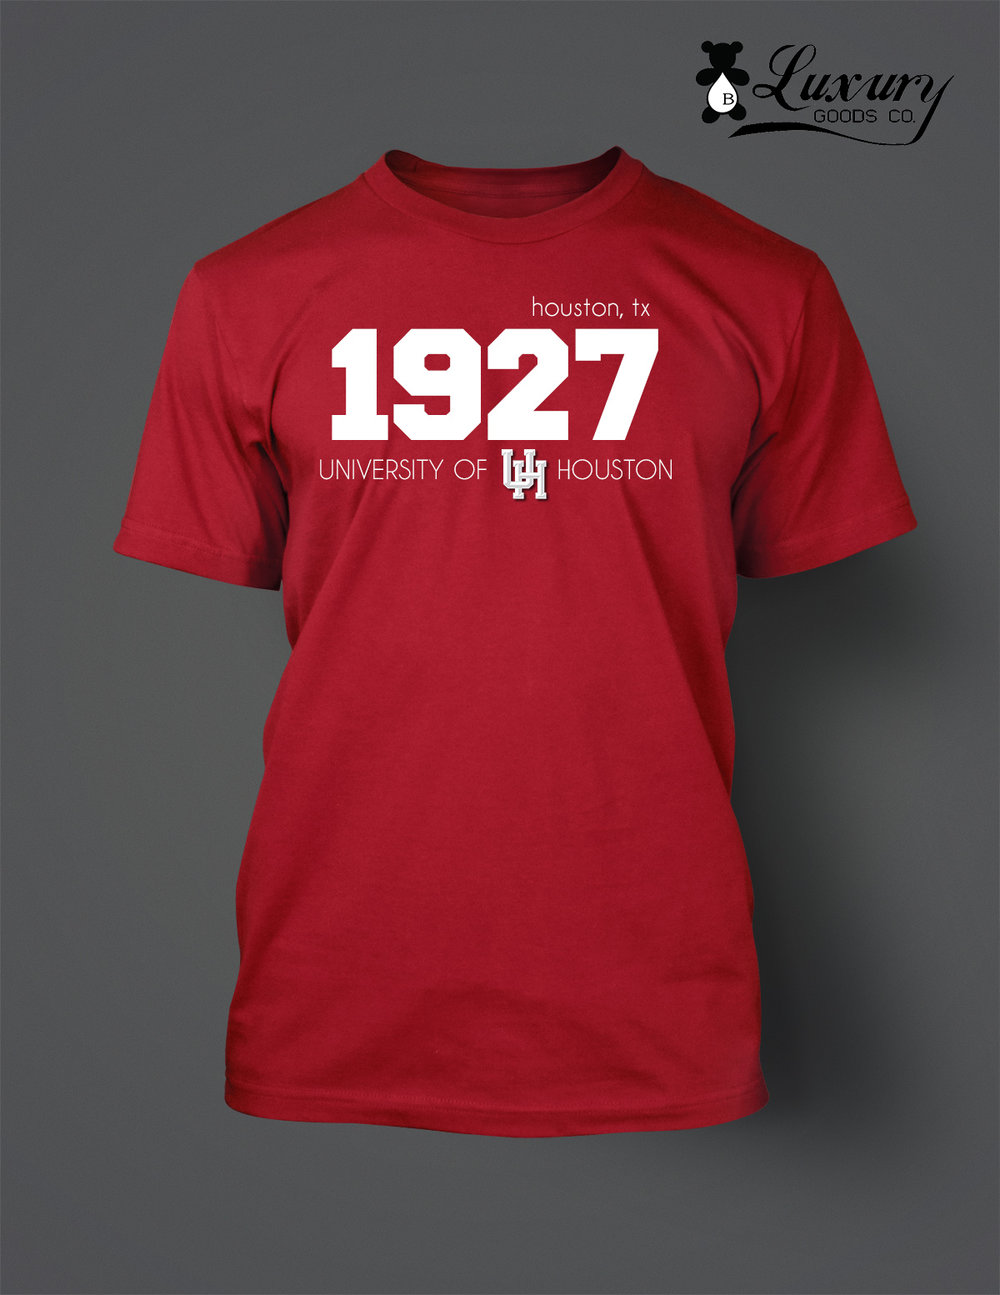 University of Houston Tee.jpg